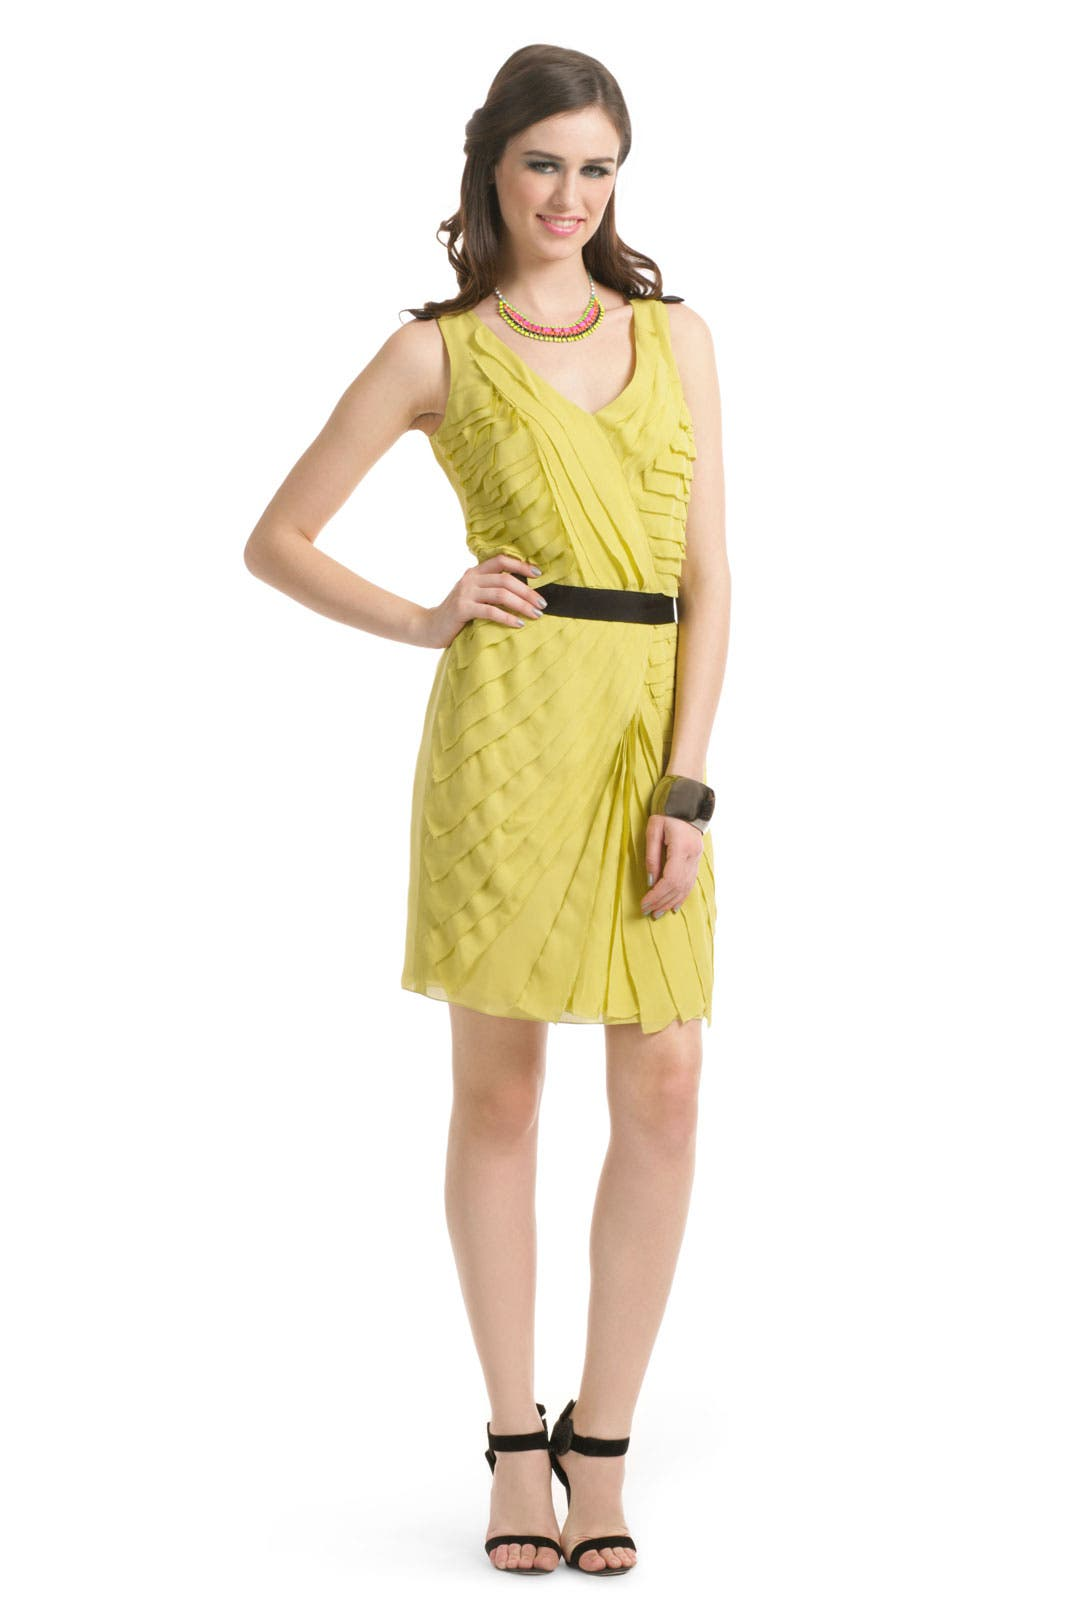 Love me in Lemon Dress by Sachin + Babi